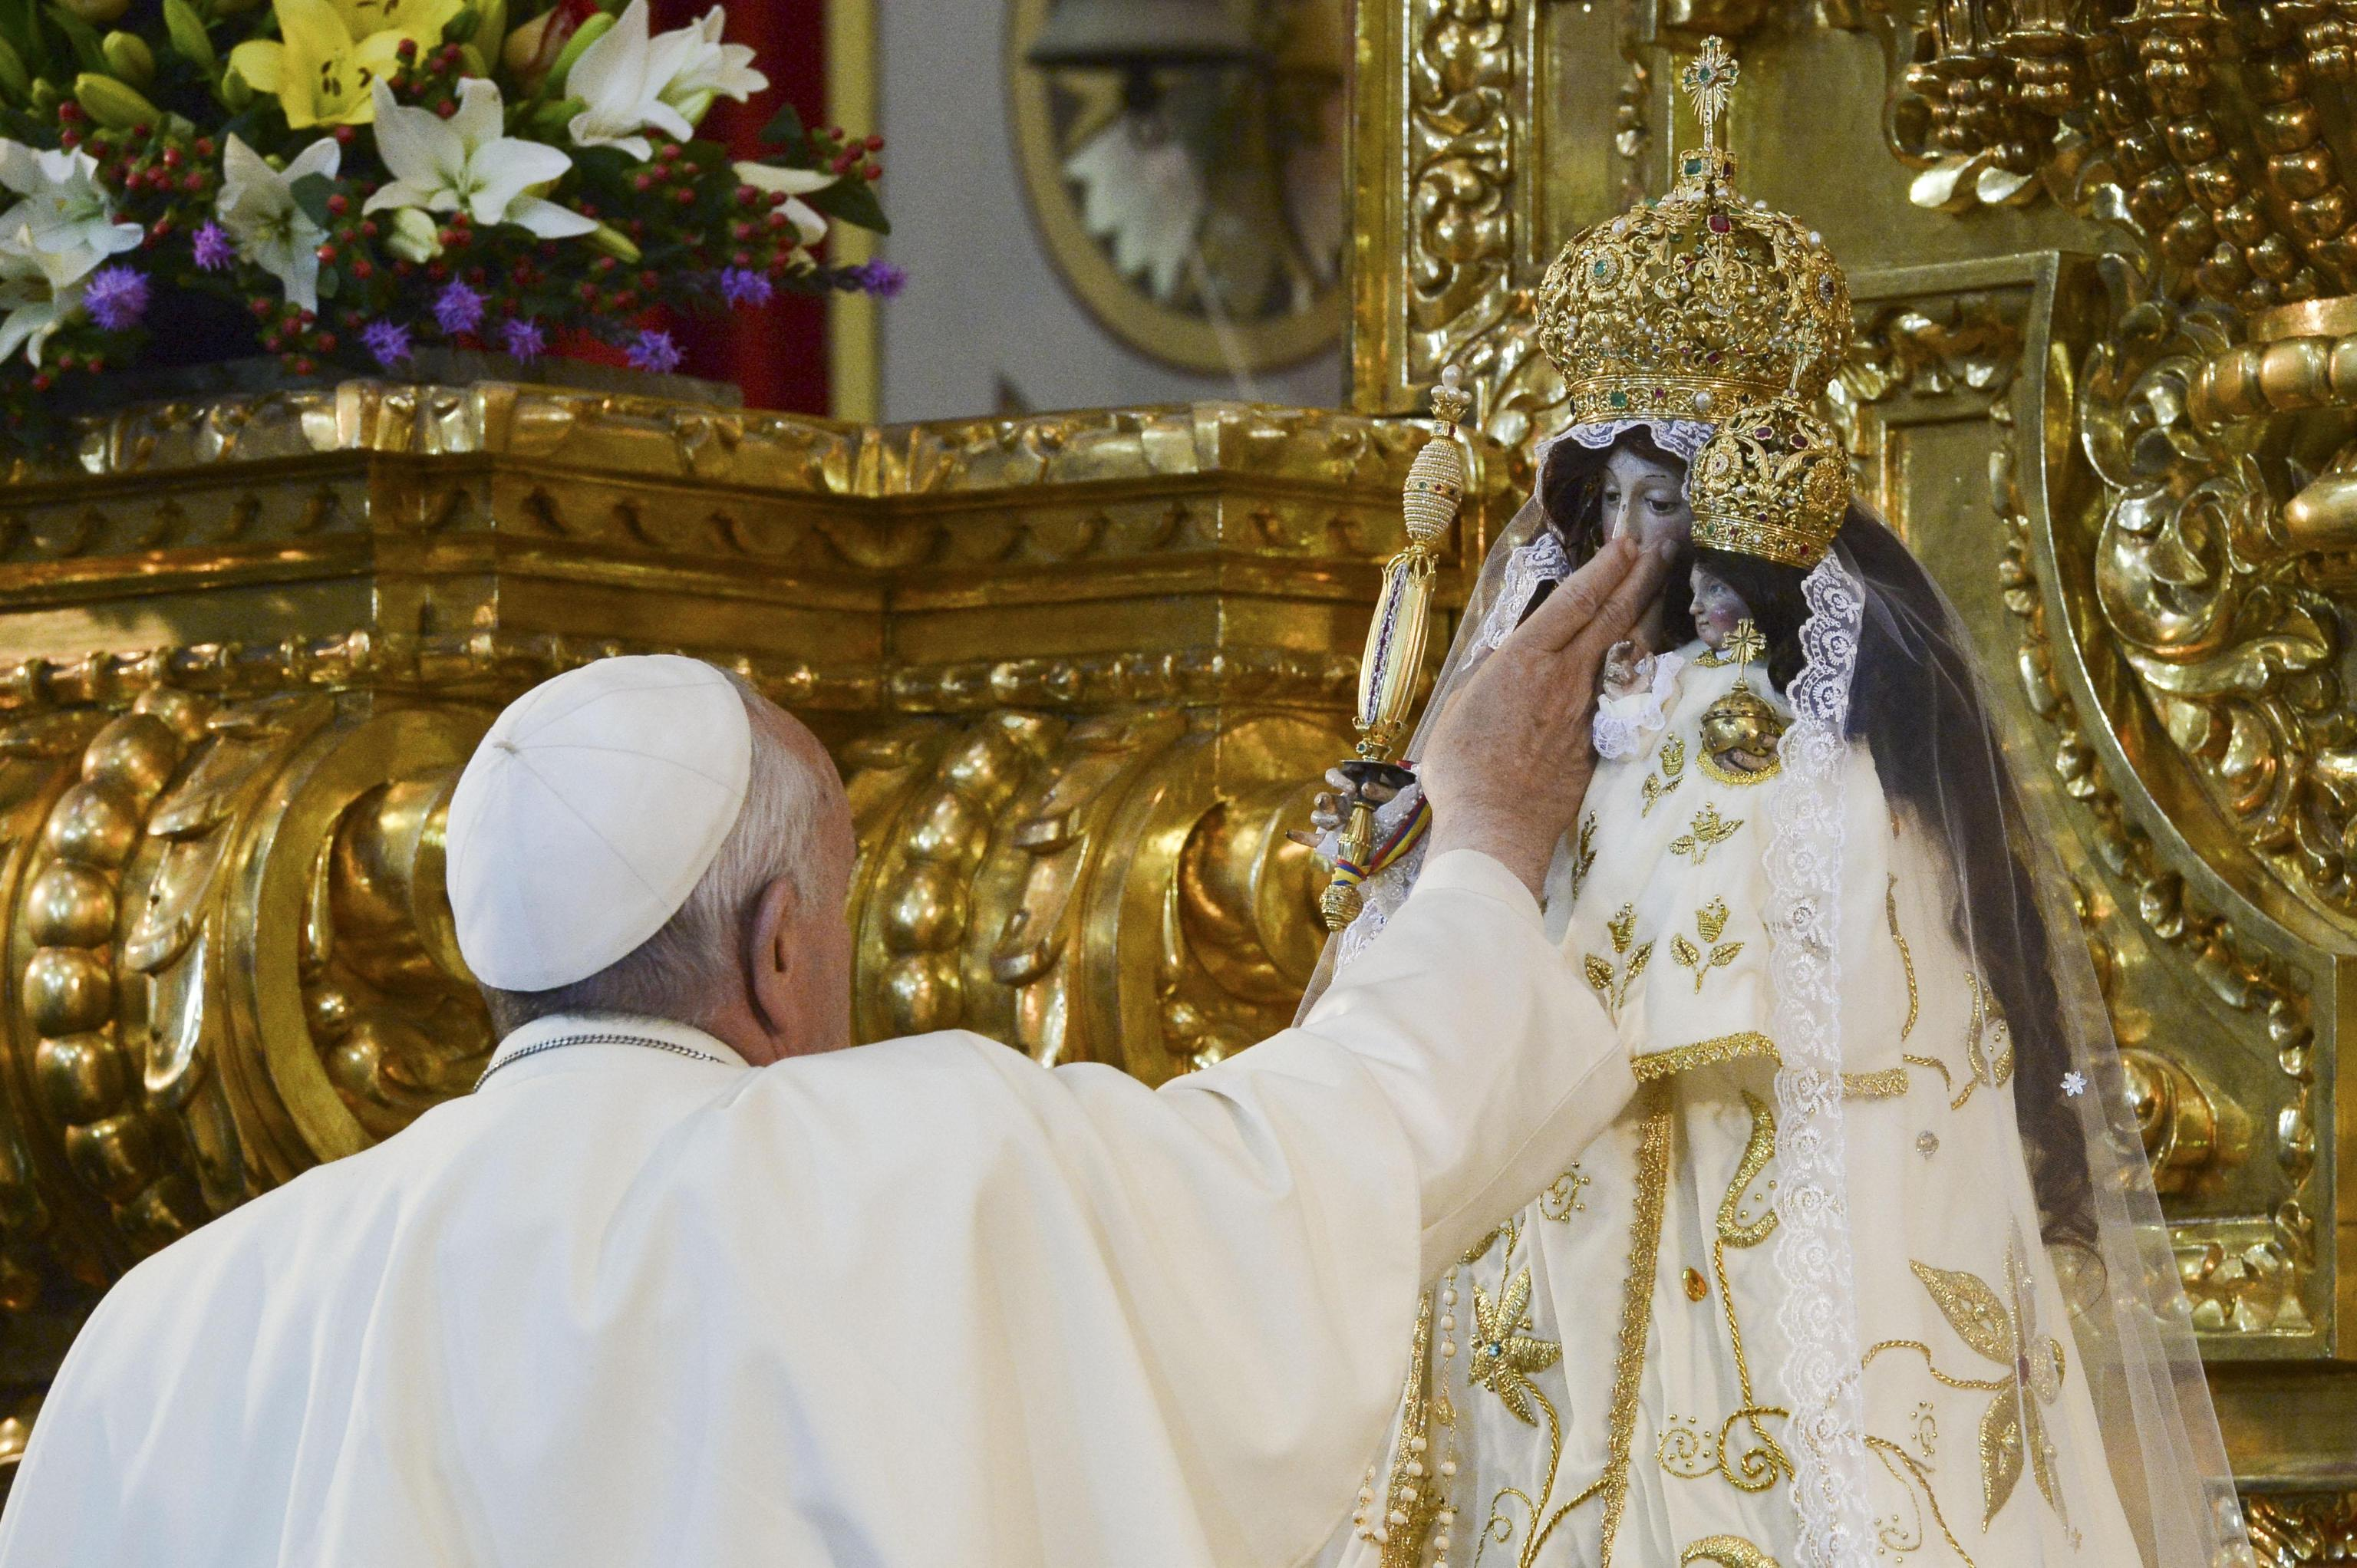 Pope Francis caresses the statue of Our Lady of Quinche